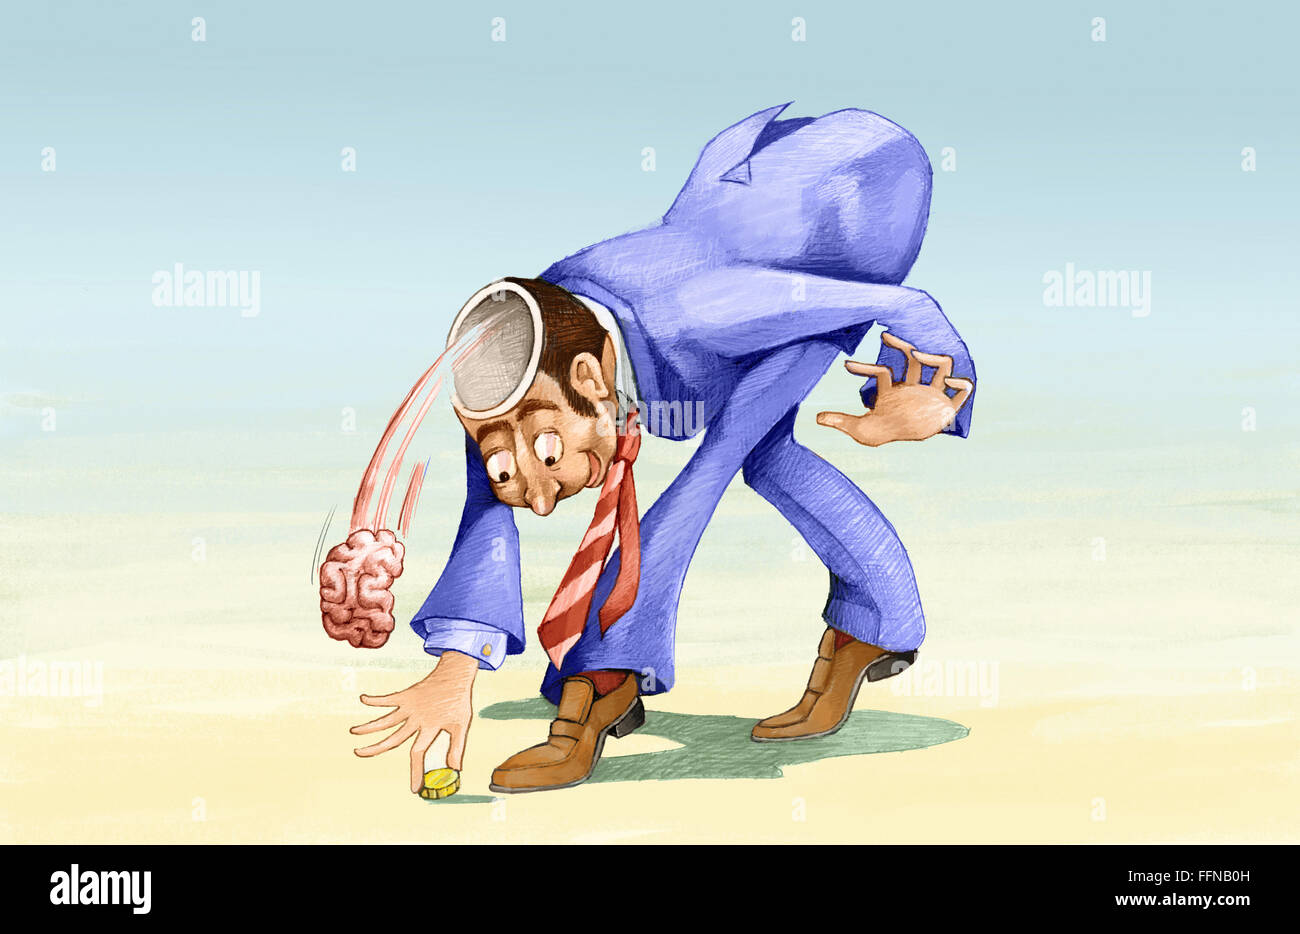 a man as he bends to pick up a coin loses brain - Stock Image